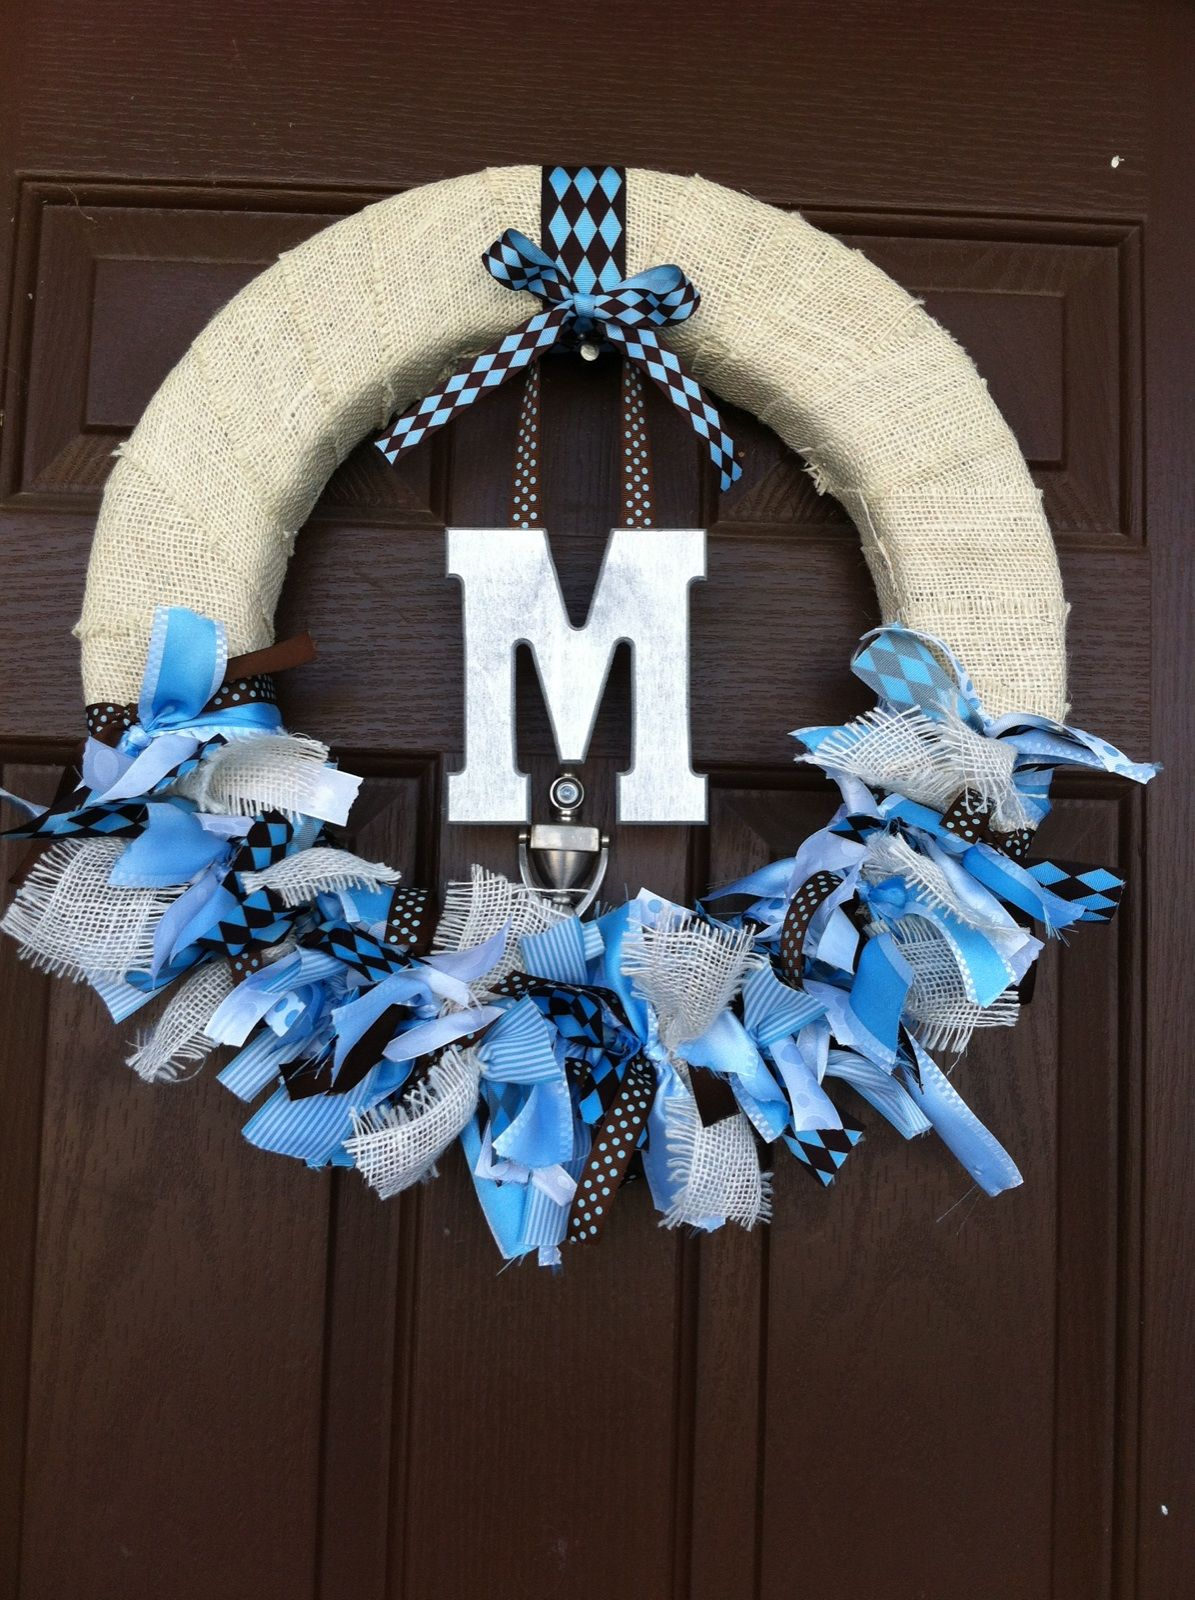 Made this wreath for my sister's baby shower.